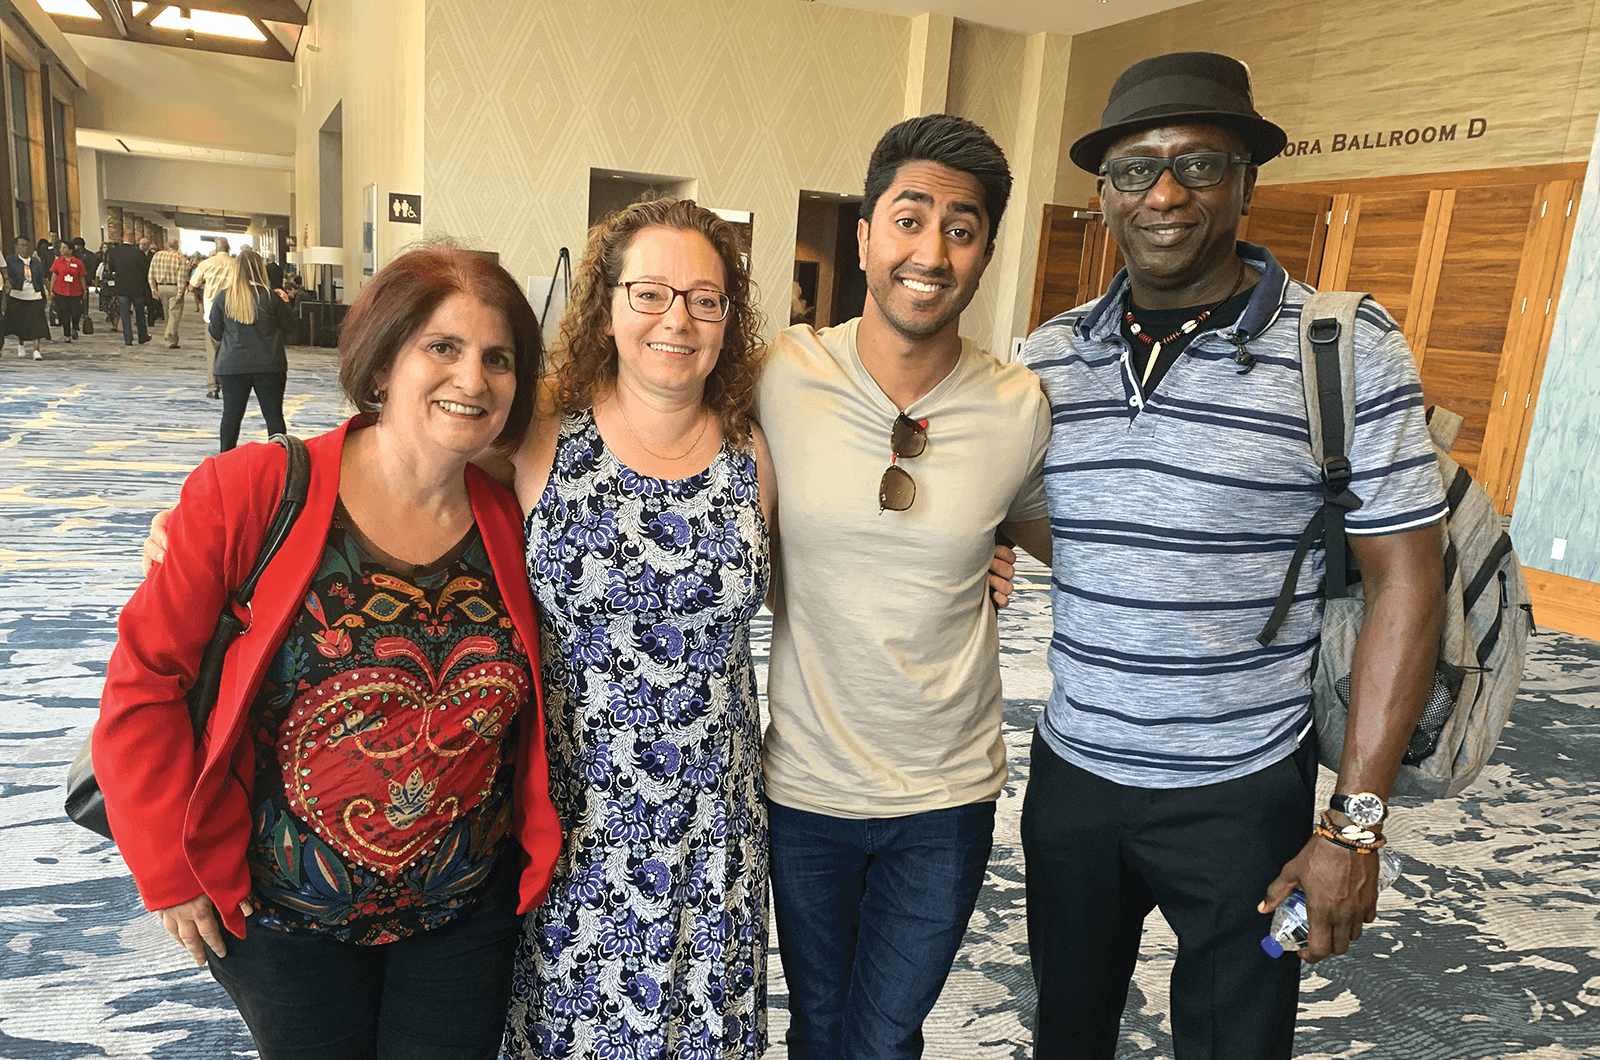 Four people pose together at annual convention